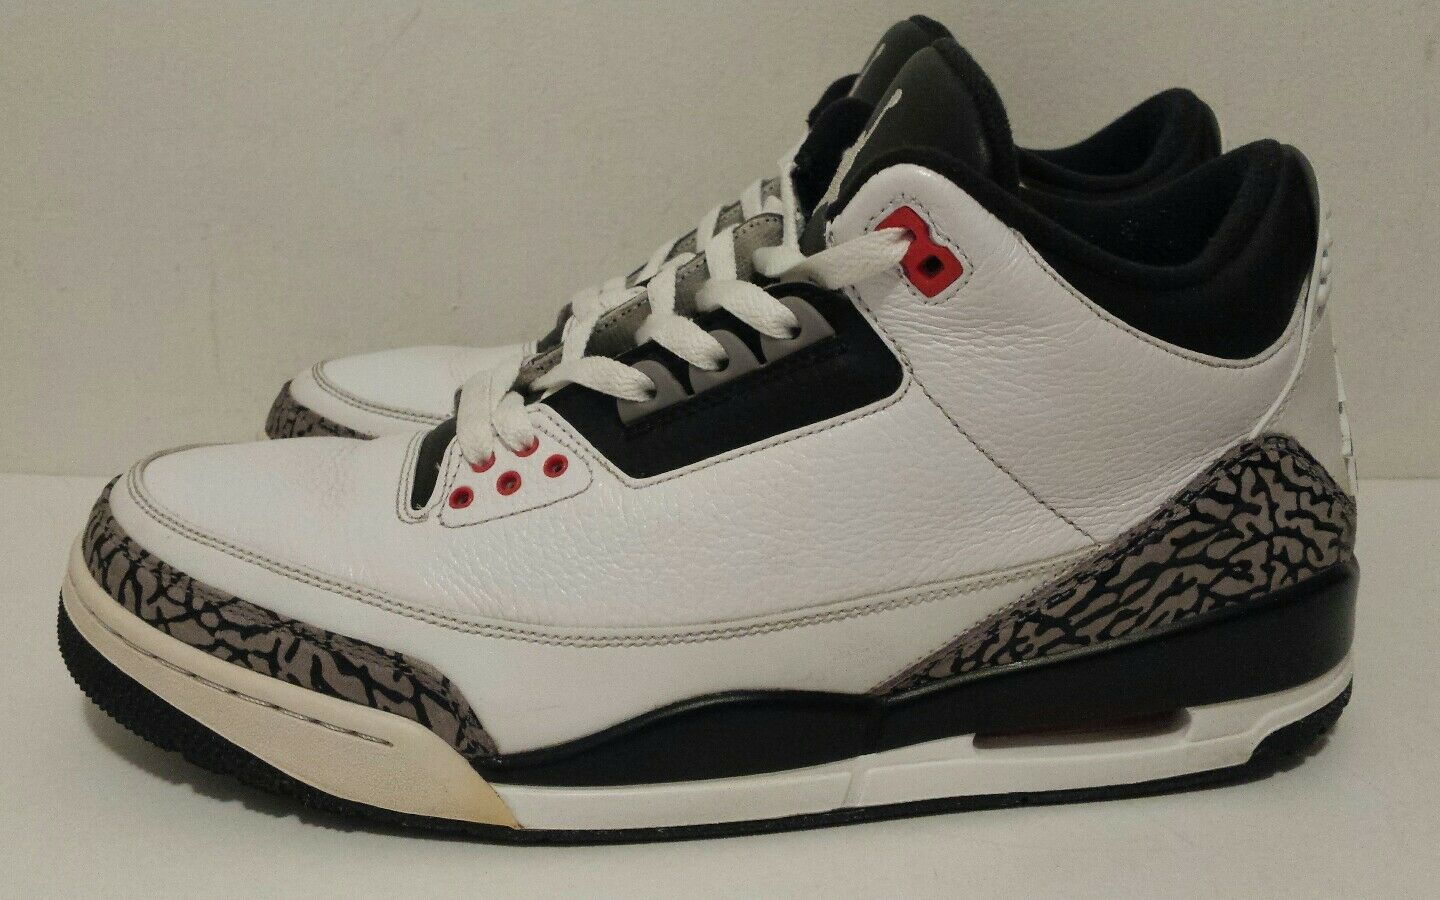 Nike Air Jordan III Retro 3 Cement Infrared White Black 136064-123 Mens Size 12